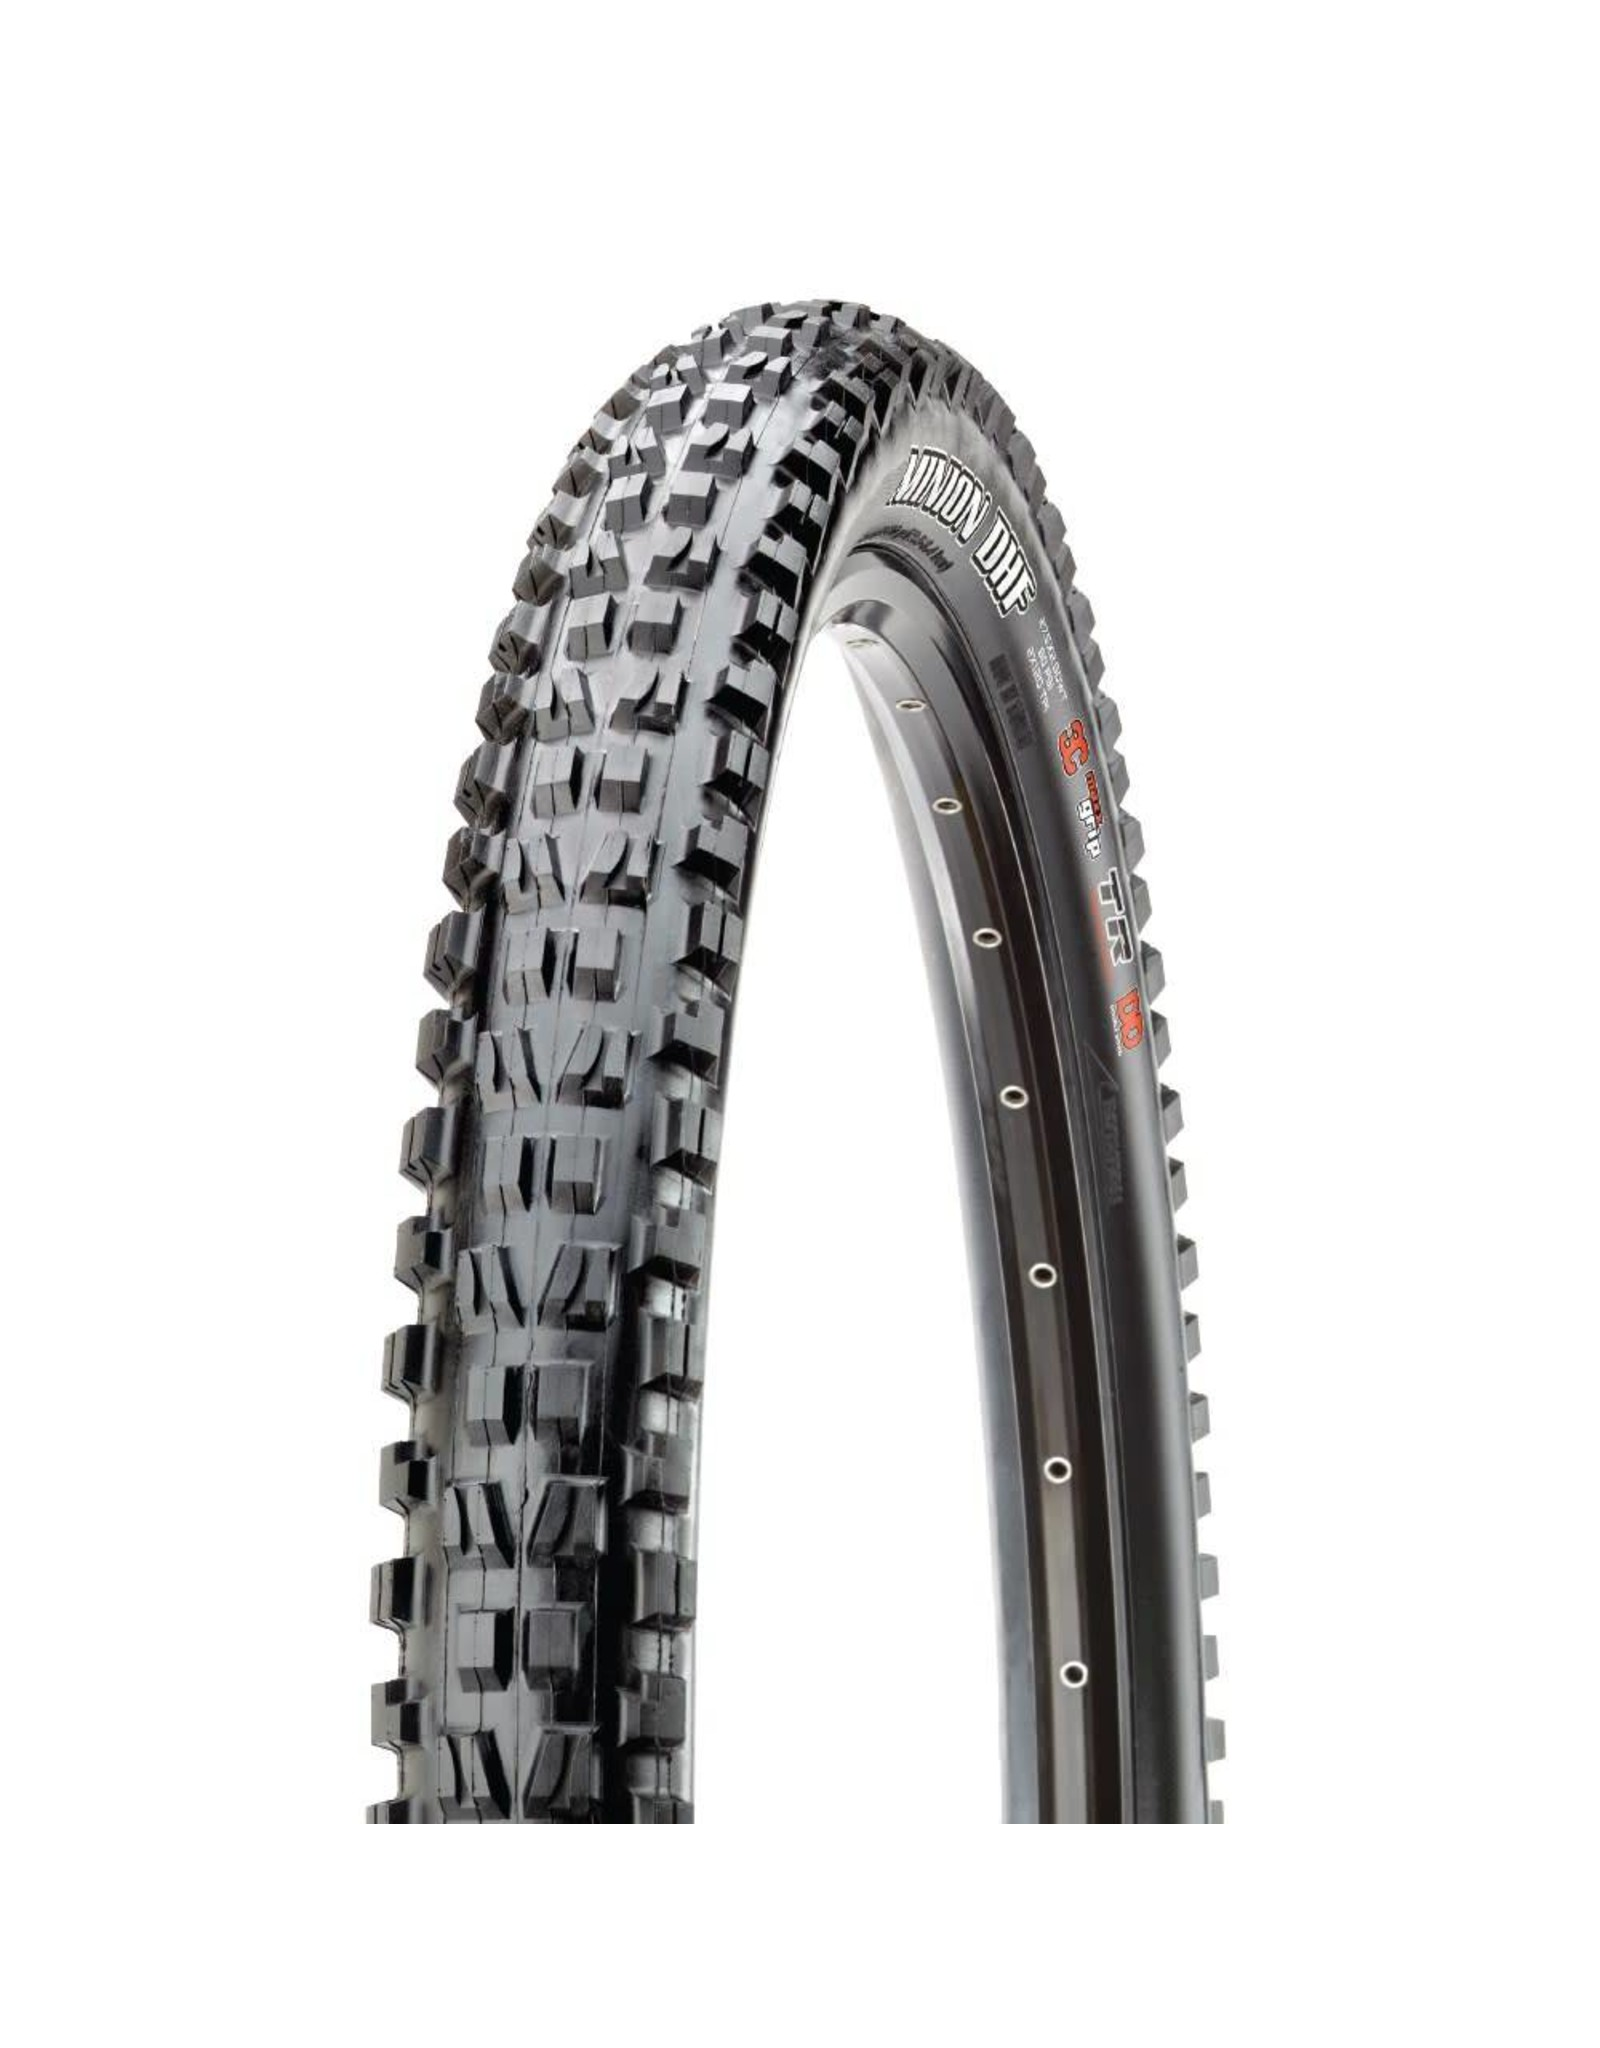 """Maxxis Maxxis Minion DHF Tire: 27.5 x 2.50"""", Folding, 120tpi, 3C, Double Down, Tubeless Ready, Wide Trail, Black"""